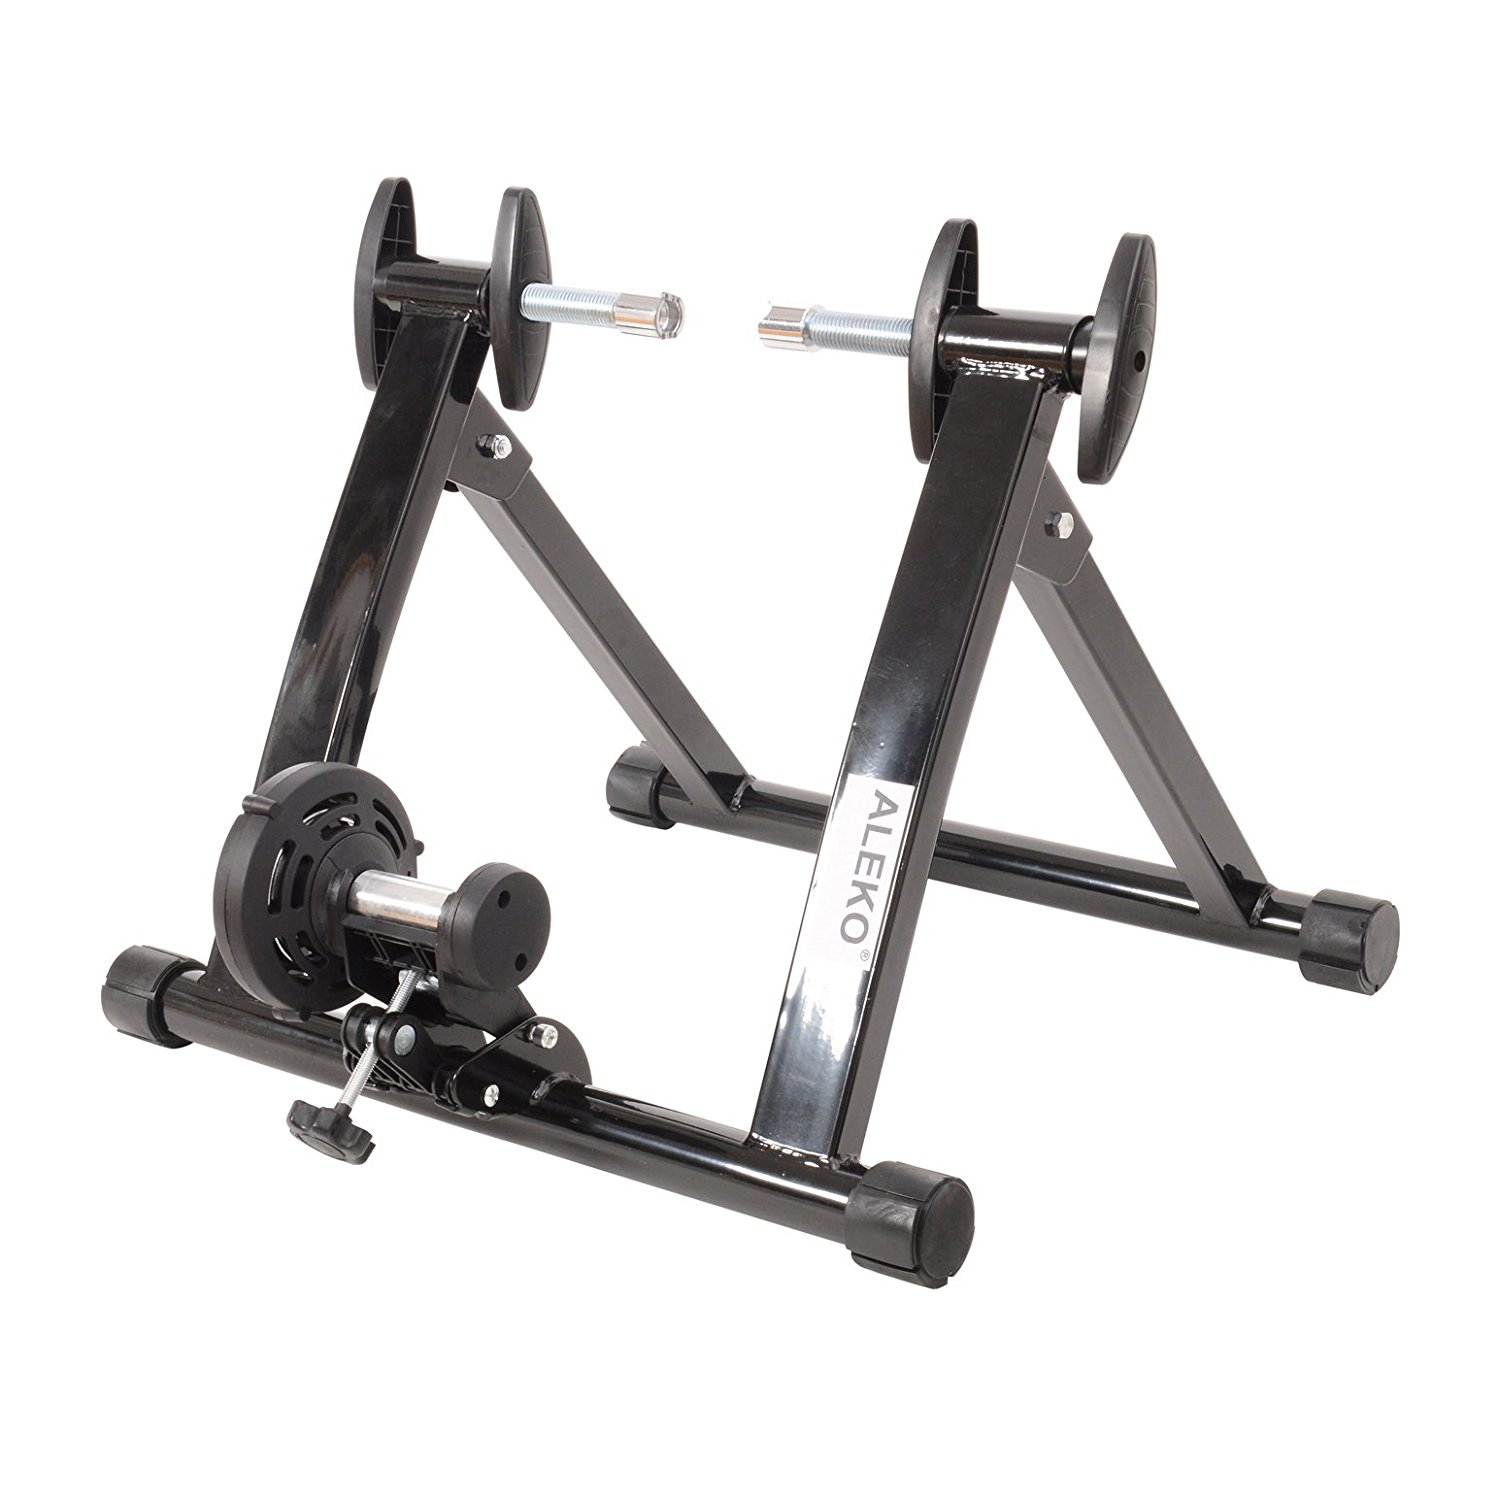 MBT01 Portable Indoor Magnetic Bicycle Exercise Trainer Bike Stand